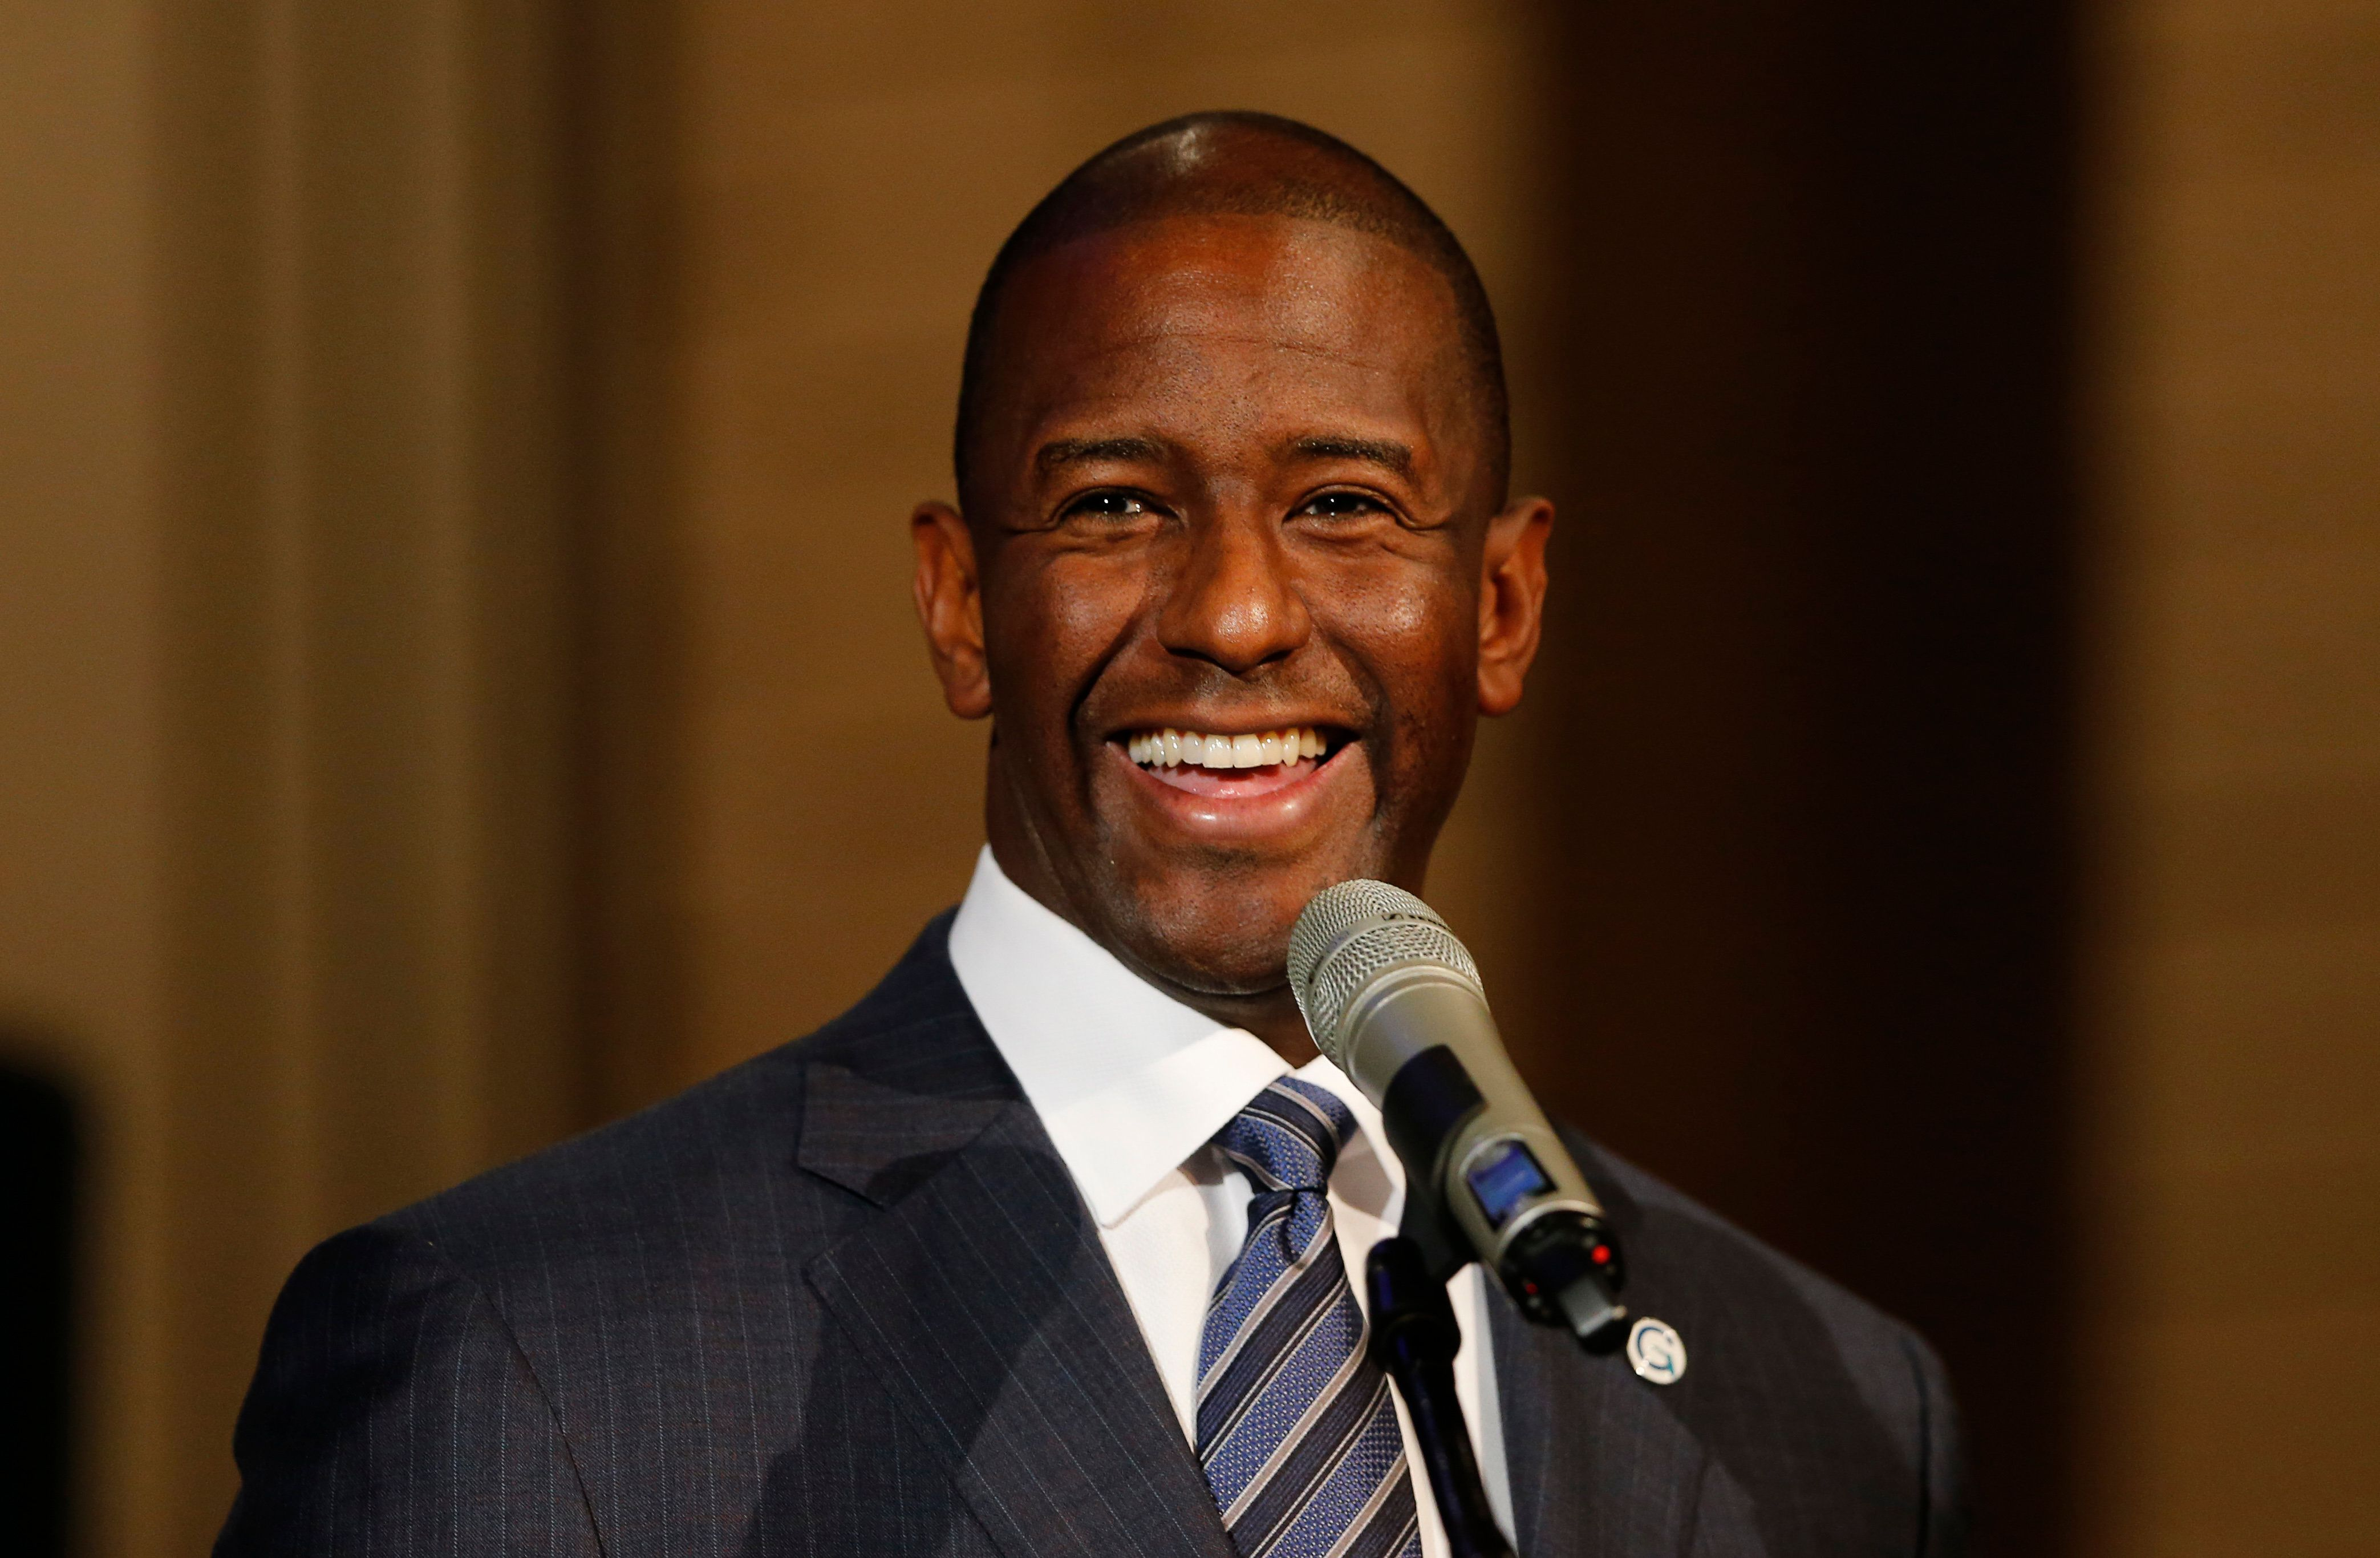 Andrew Gillum Shreds Donald Trump With Just 3 Little